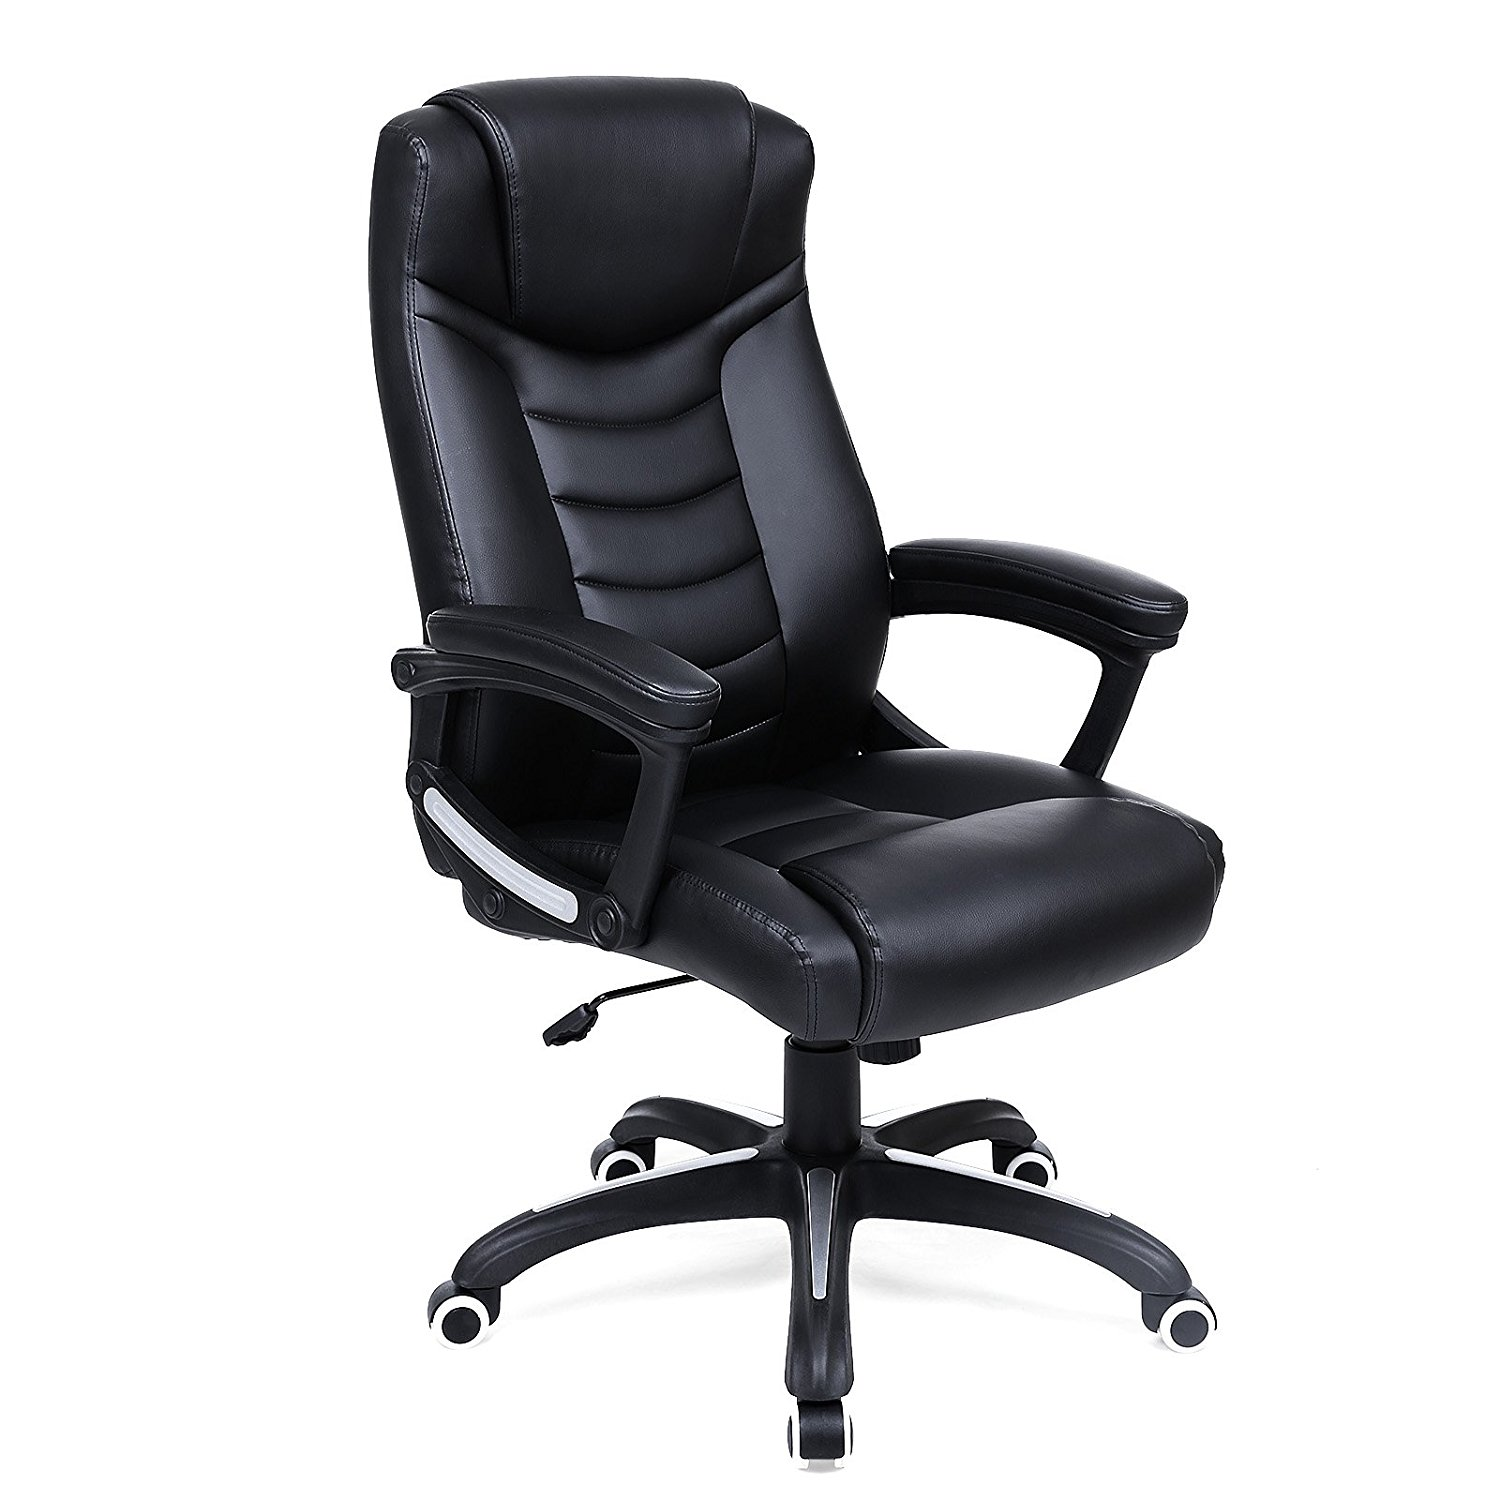 best high back office chair under 200 Review